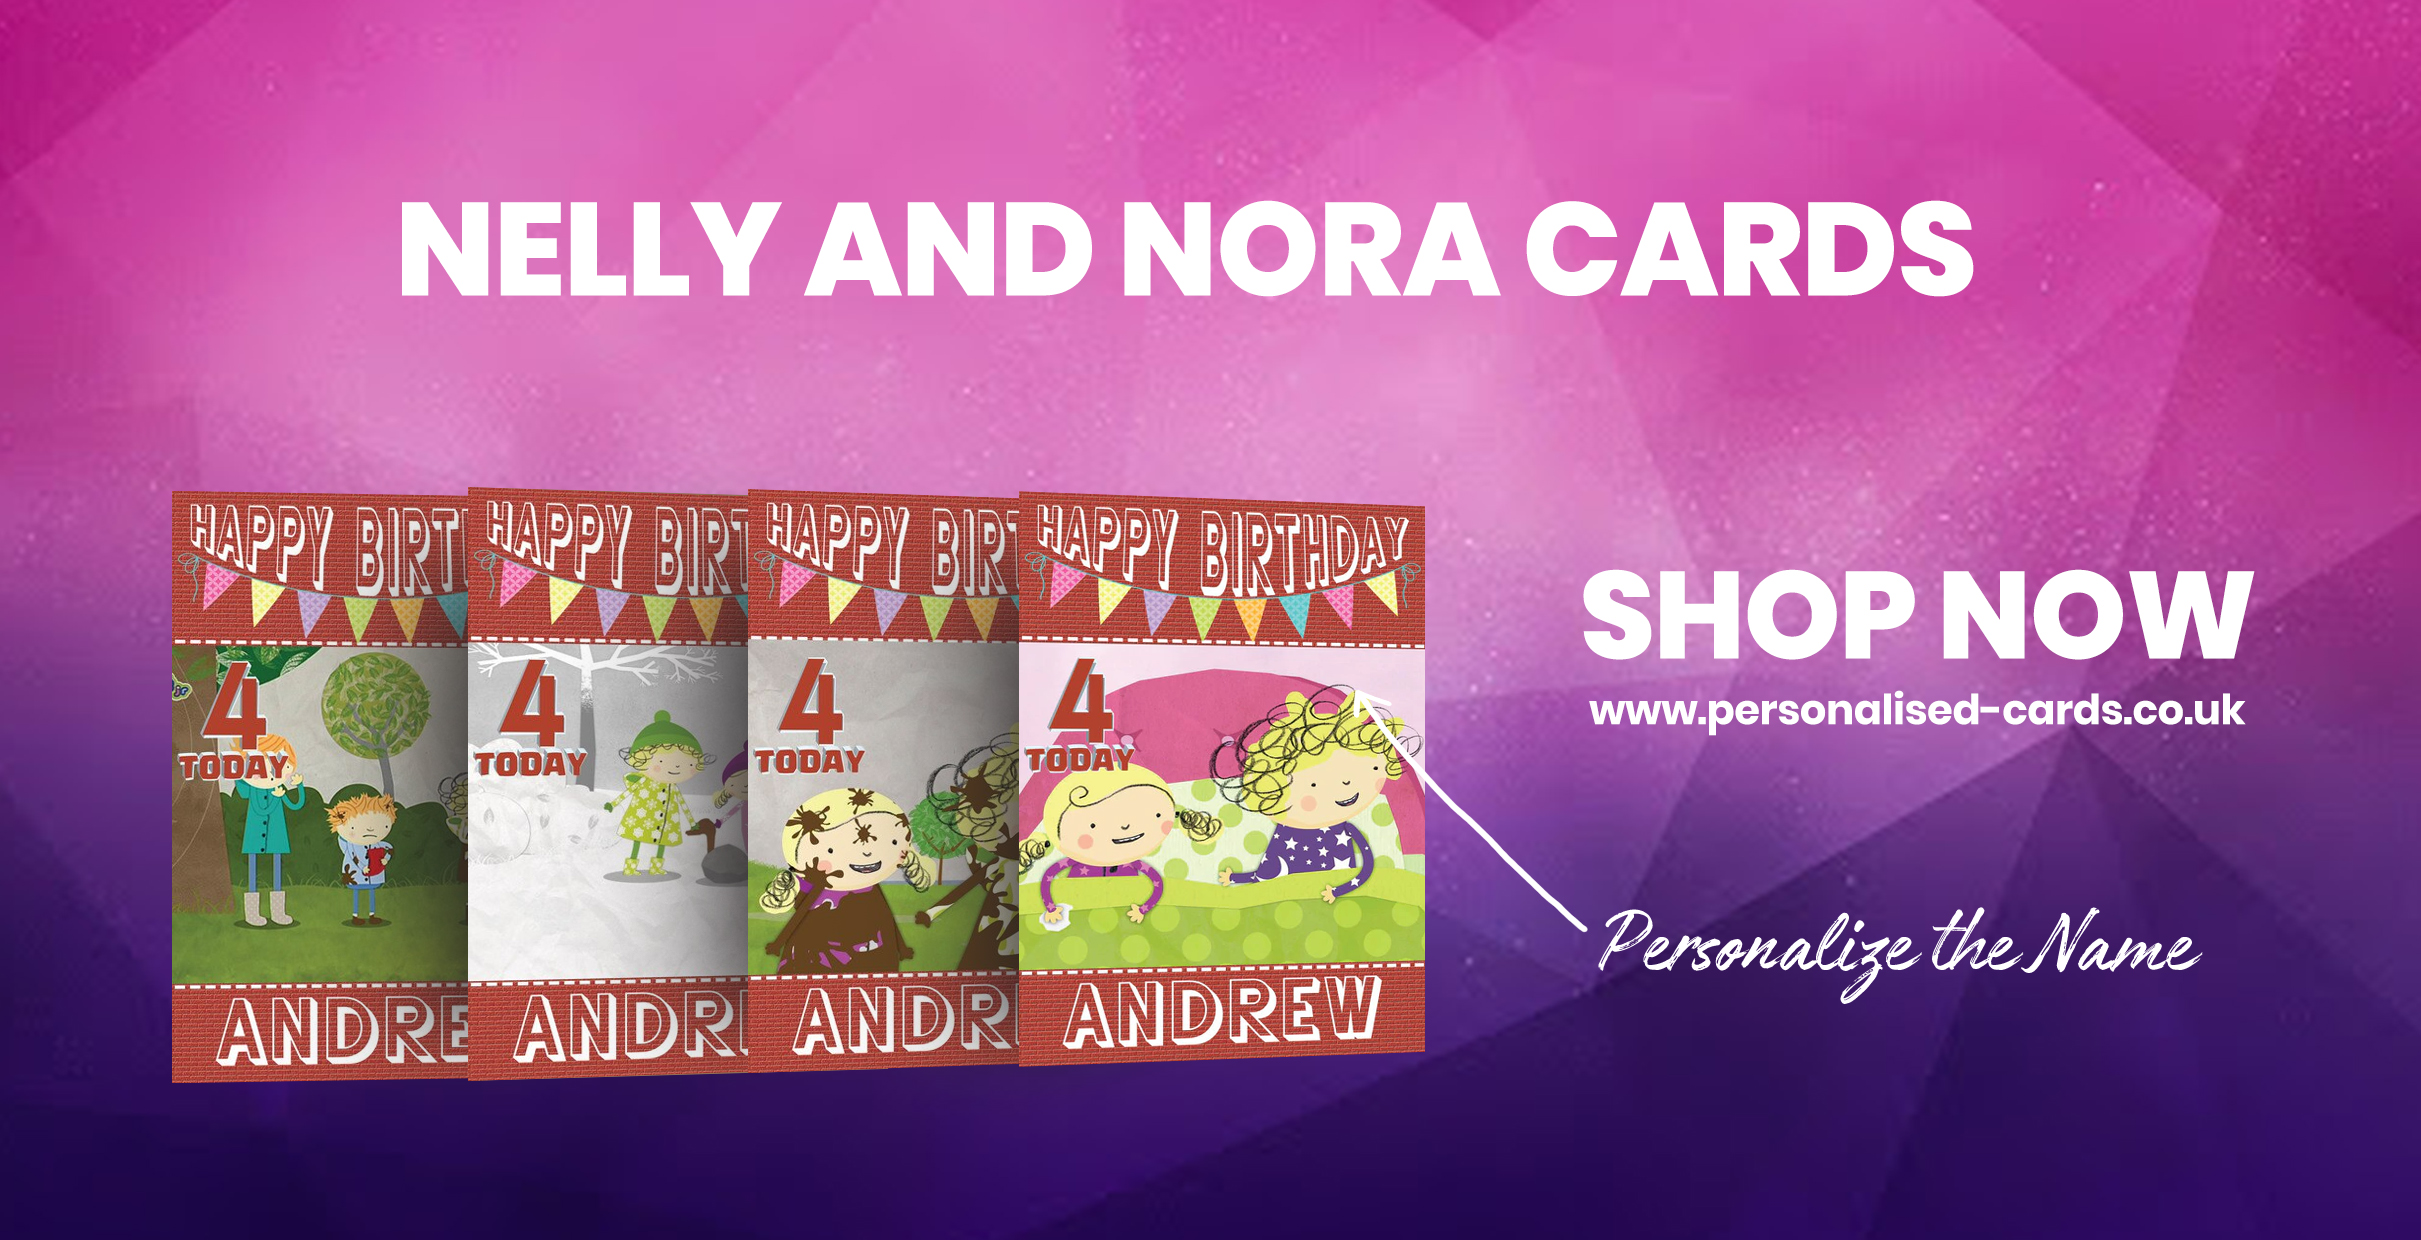 nelly-and-nora-cards.jpg